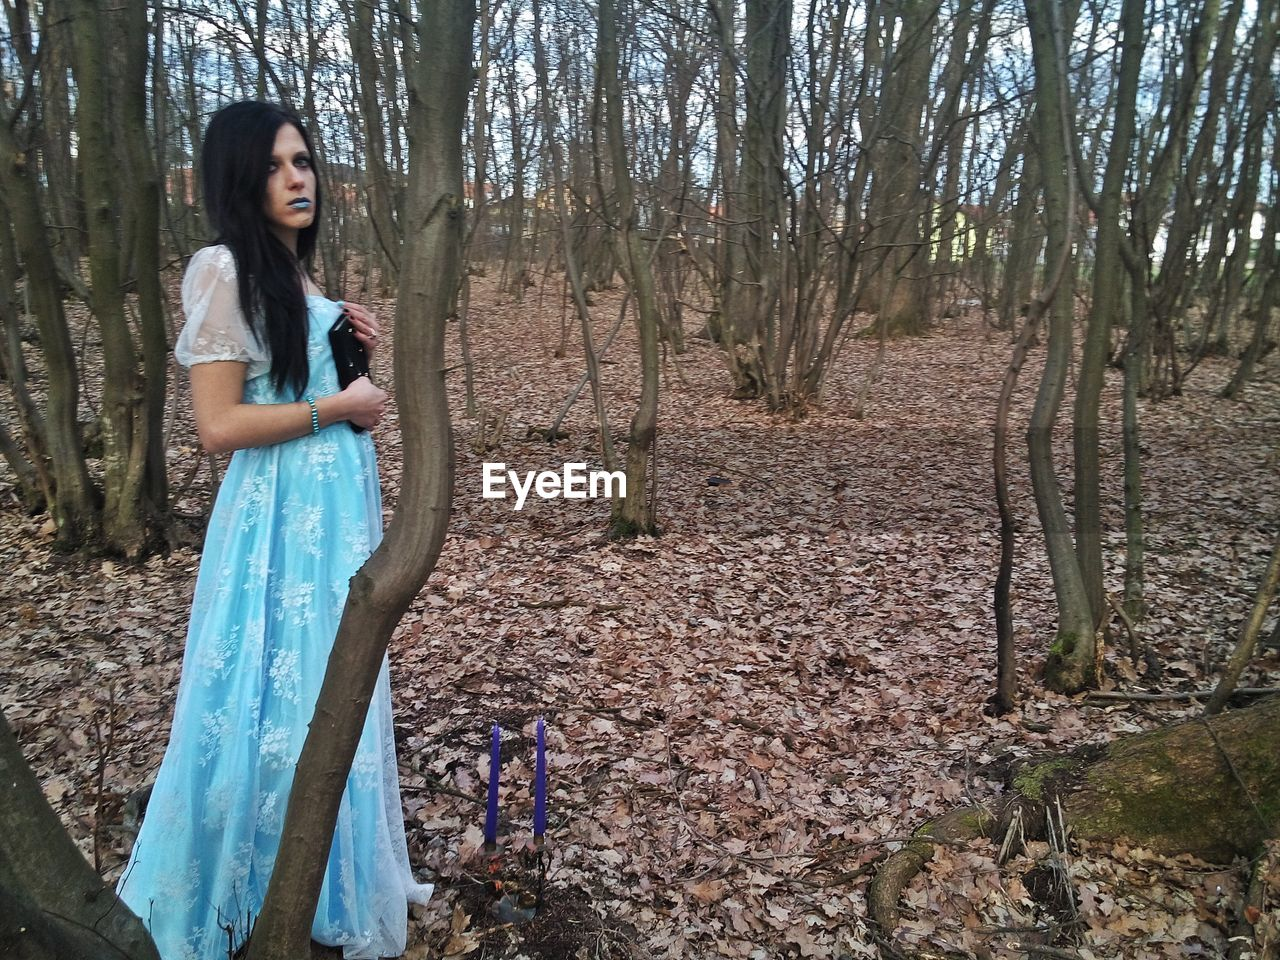 WOMAN STANDING BY BARE TREE IN FOREST